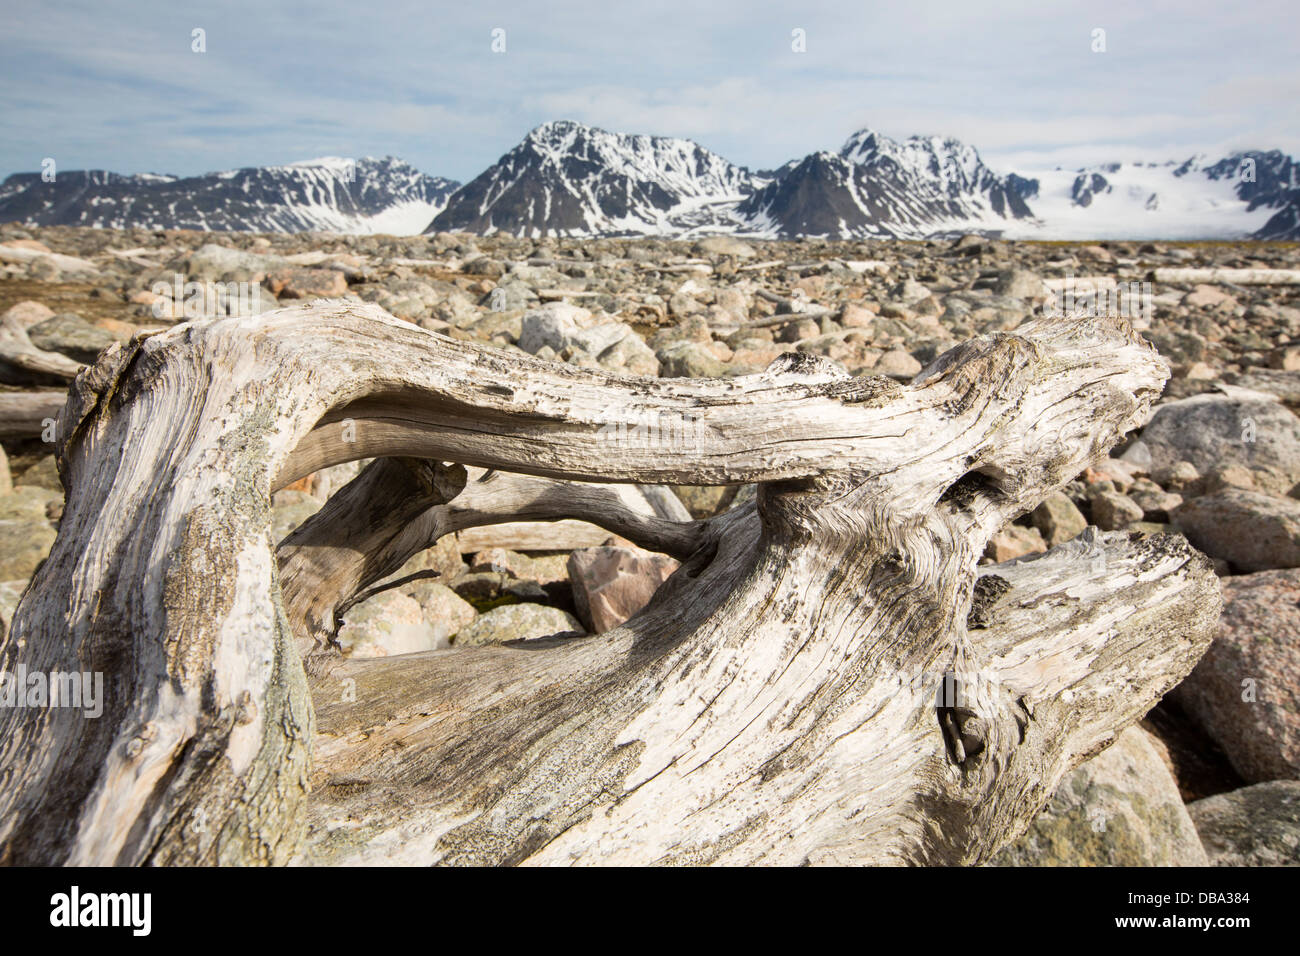 Drift wood from Siberian forests washed up on the shore at Smeerenburg (79°44'n 011°04'e) on northern - Stock Image